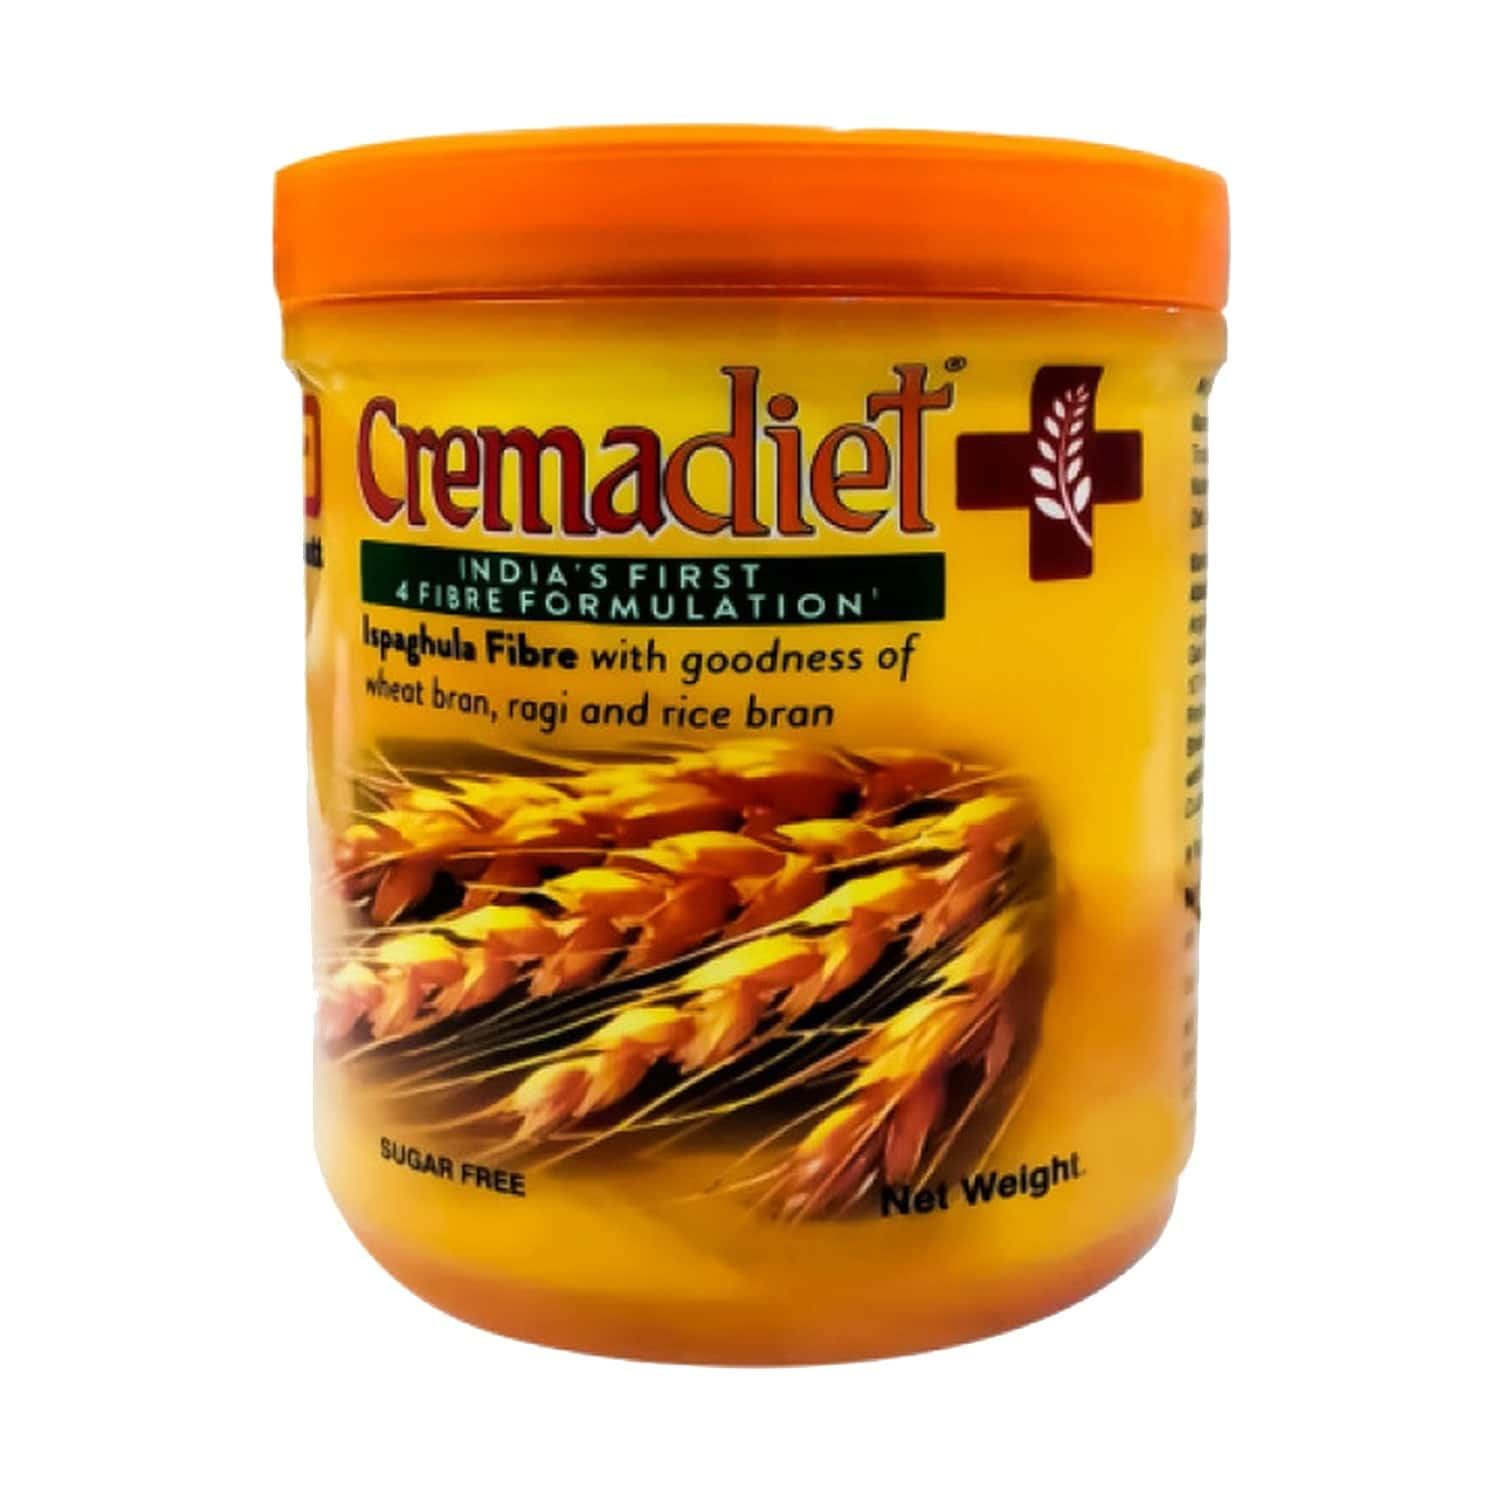 Cremadiet Plus, Relief From Constipation - 300 Gm